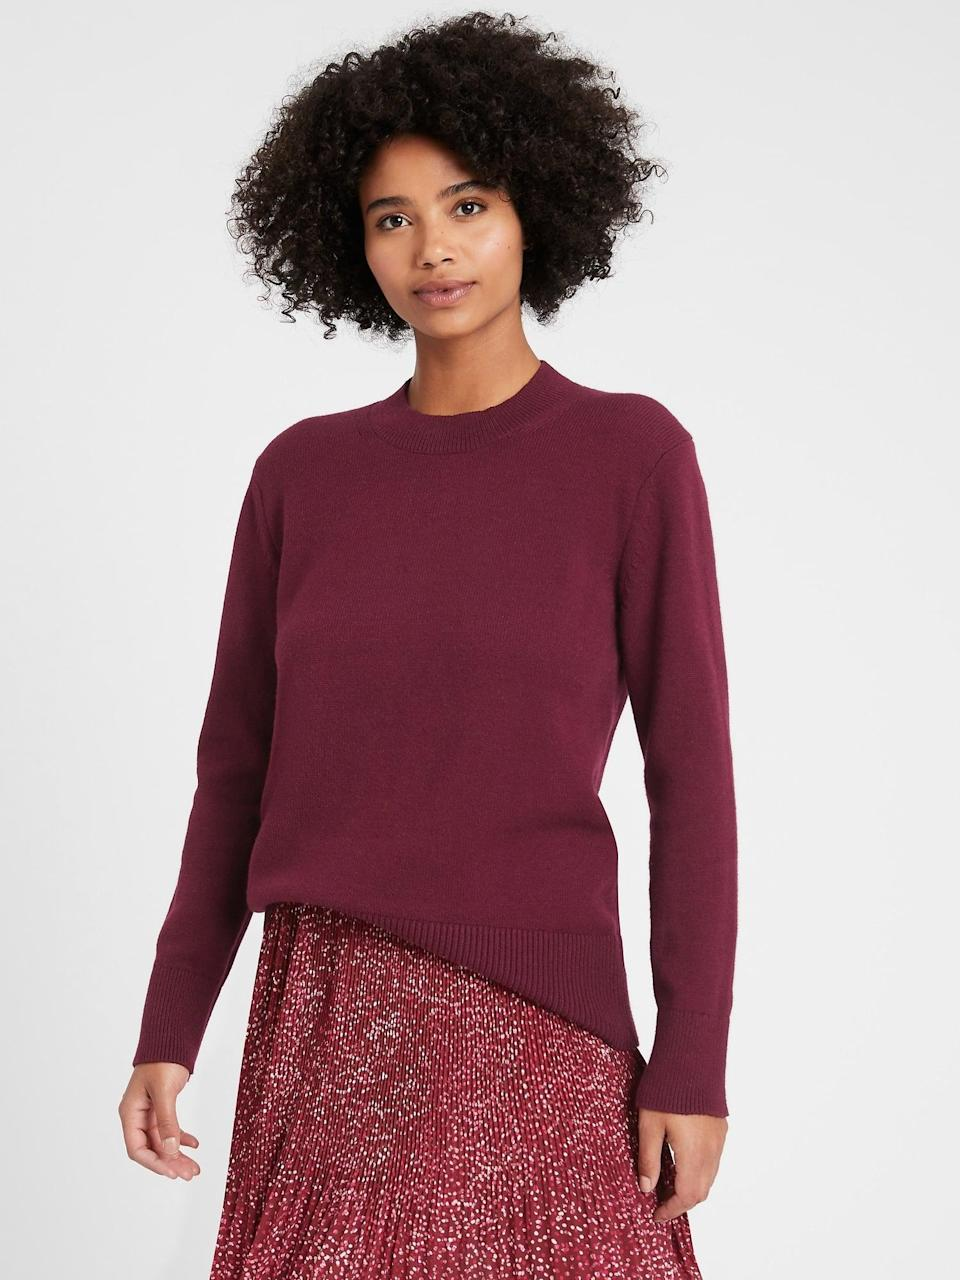 <p>Pair this <span>Banana Republic Relaxed Chunky Sweater</span> ($55, originally $80) classic crewneck with a crisp button down underneath and jeans.</p>